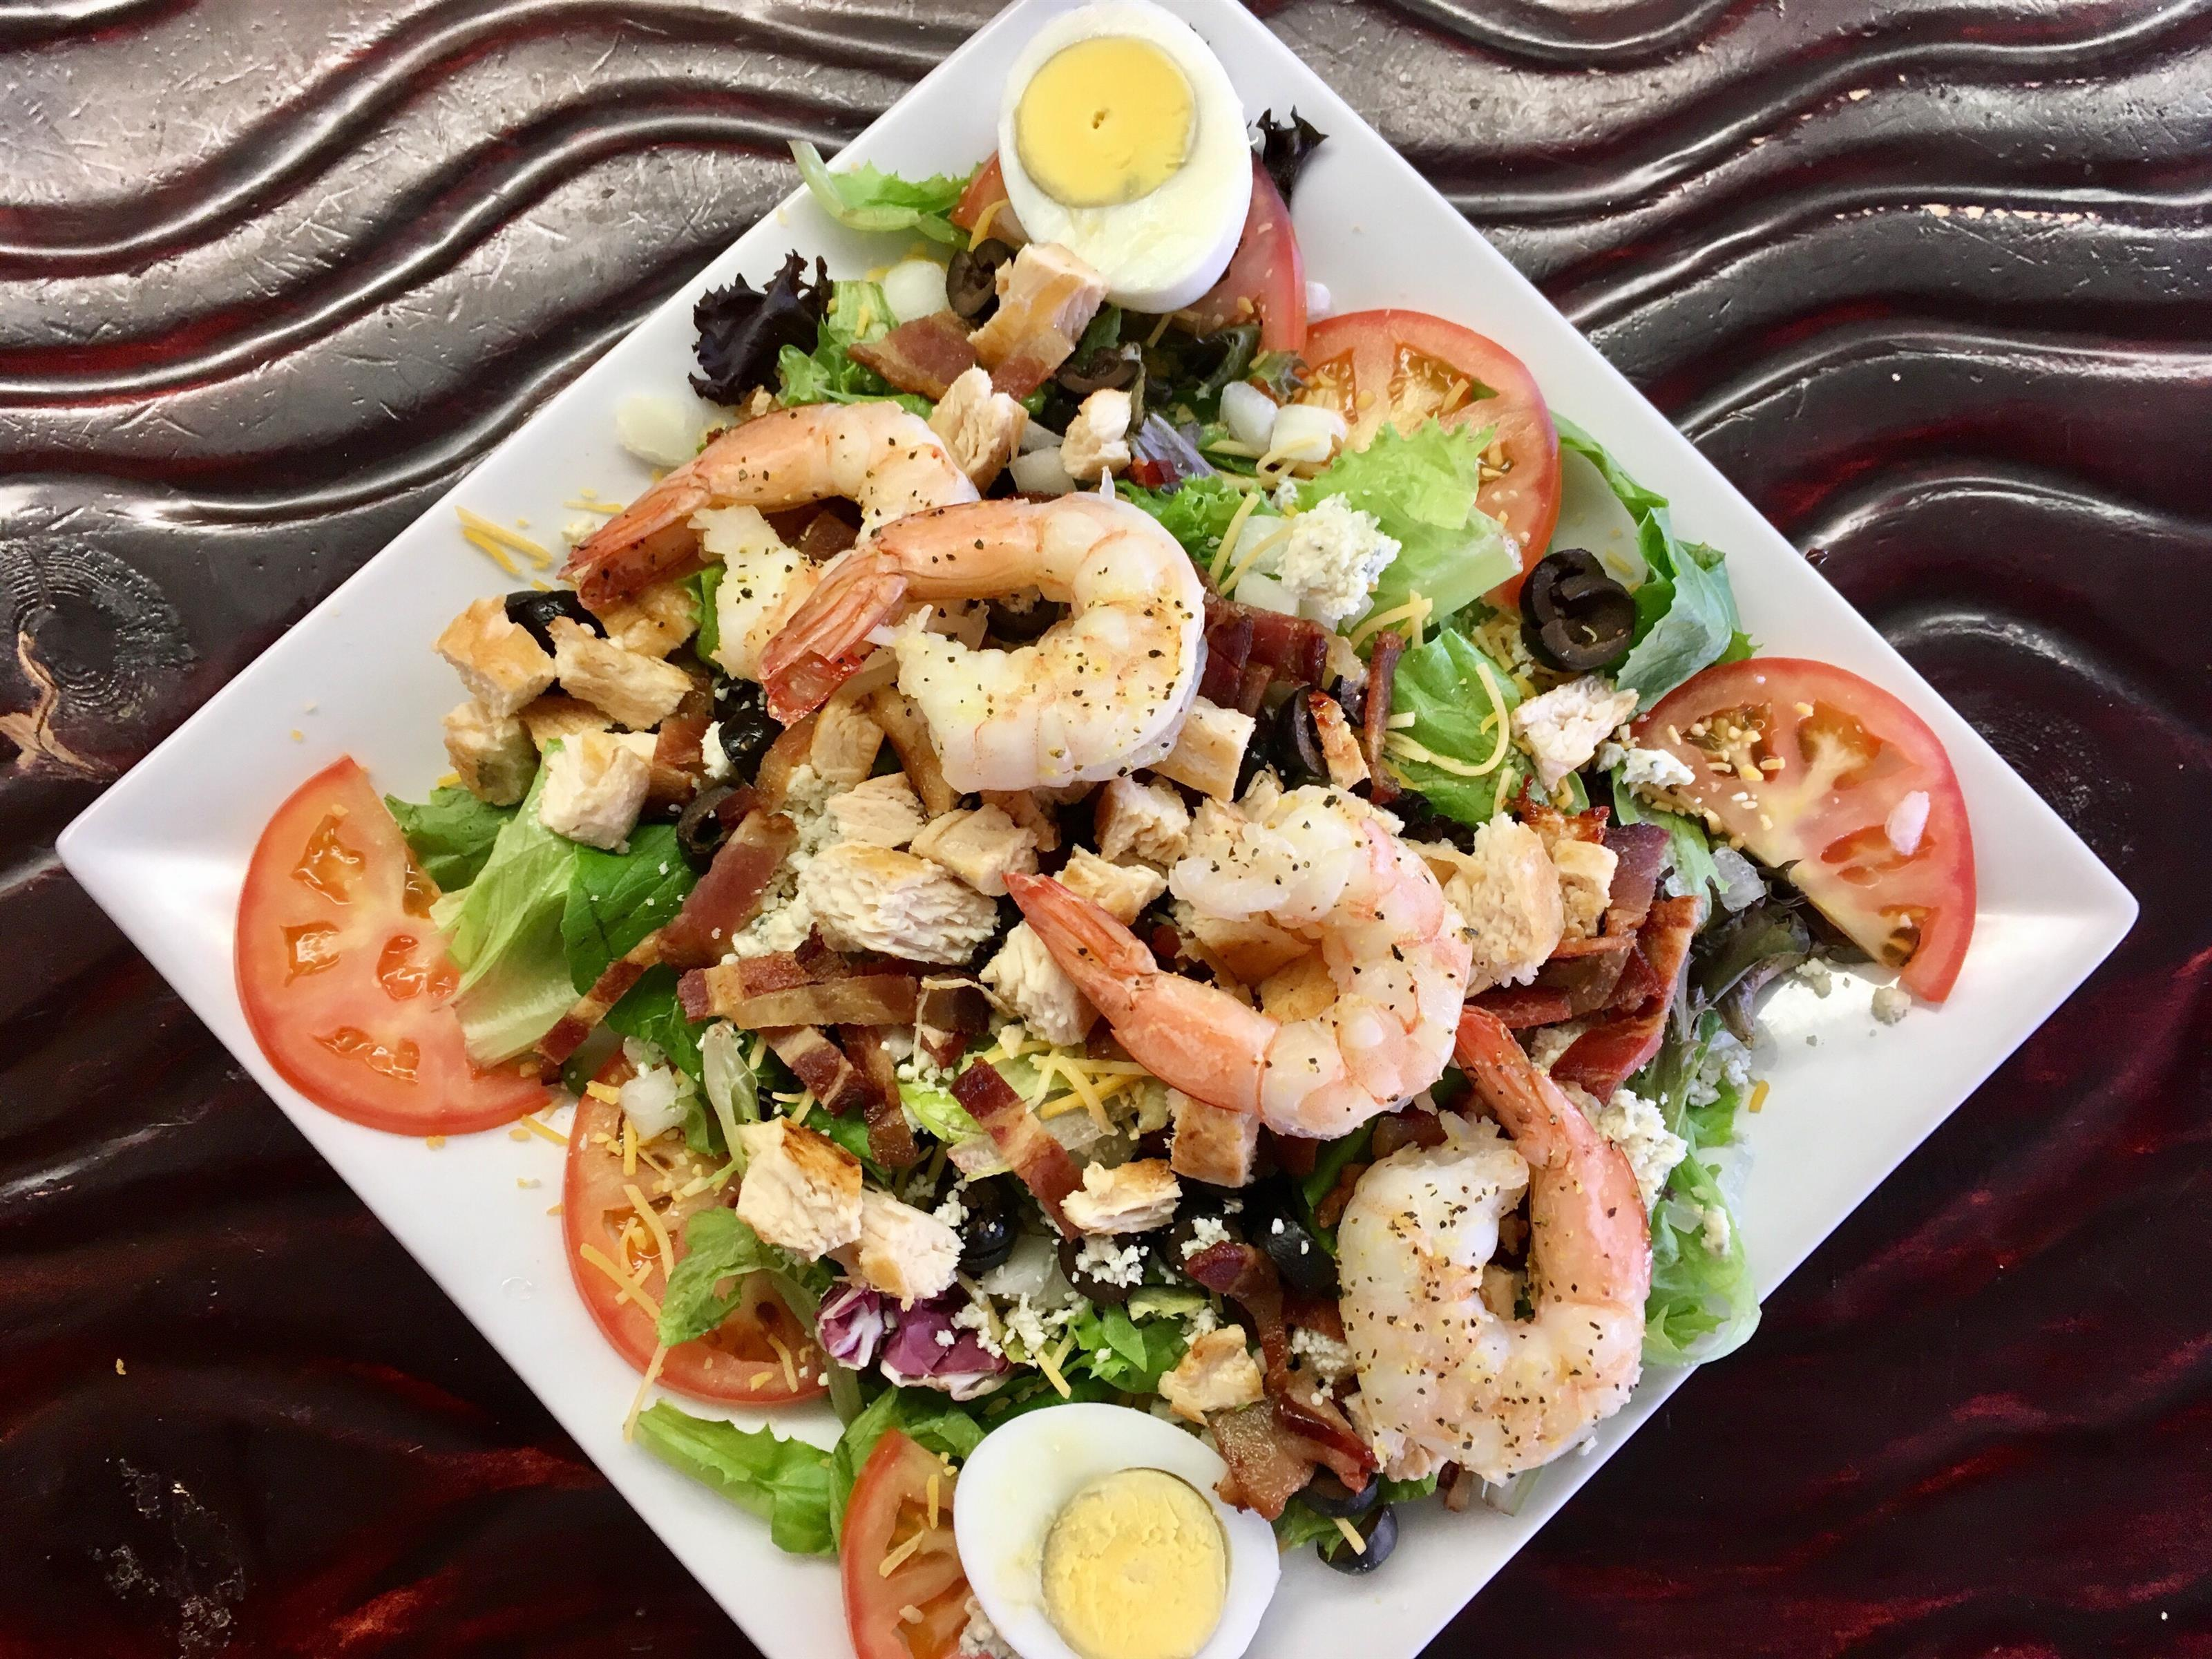 A fresh veggie salad topped with egg and shrimp